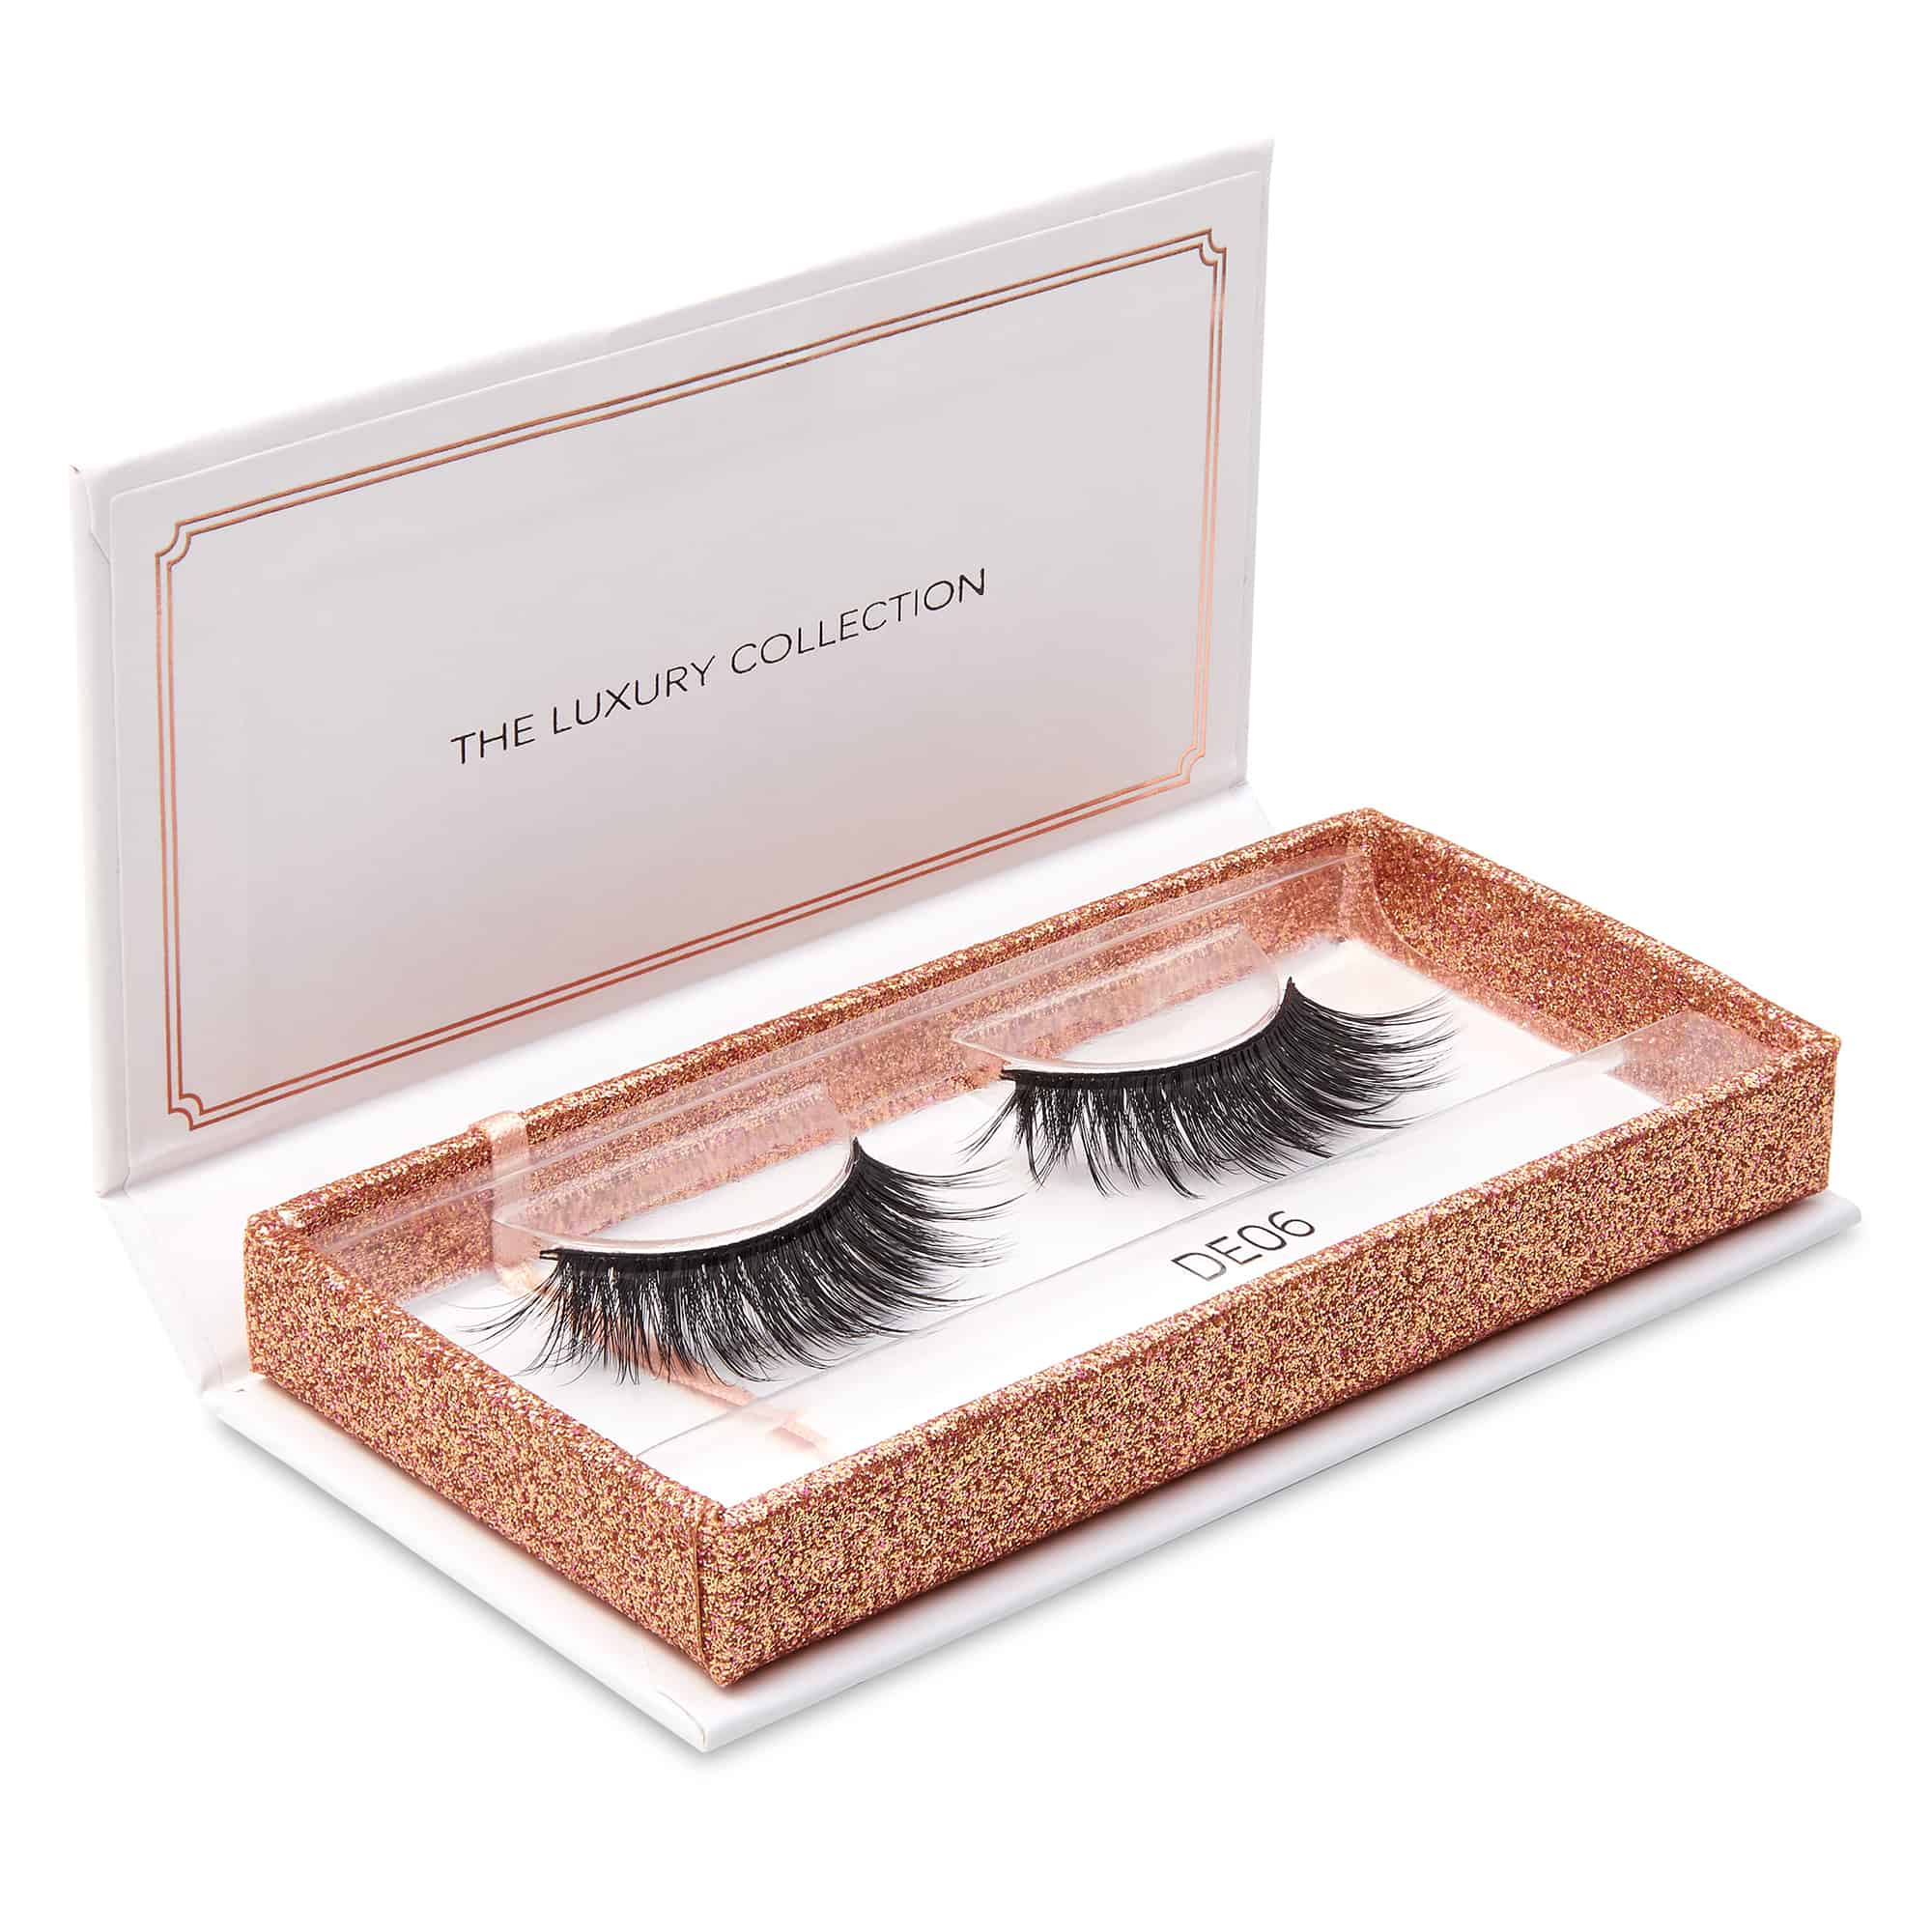 Eyelash packshot photography for website e-commerce and advertising usage by Ian Knaggs